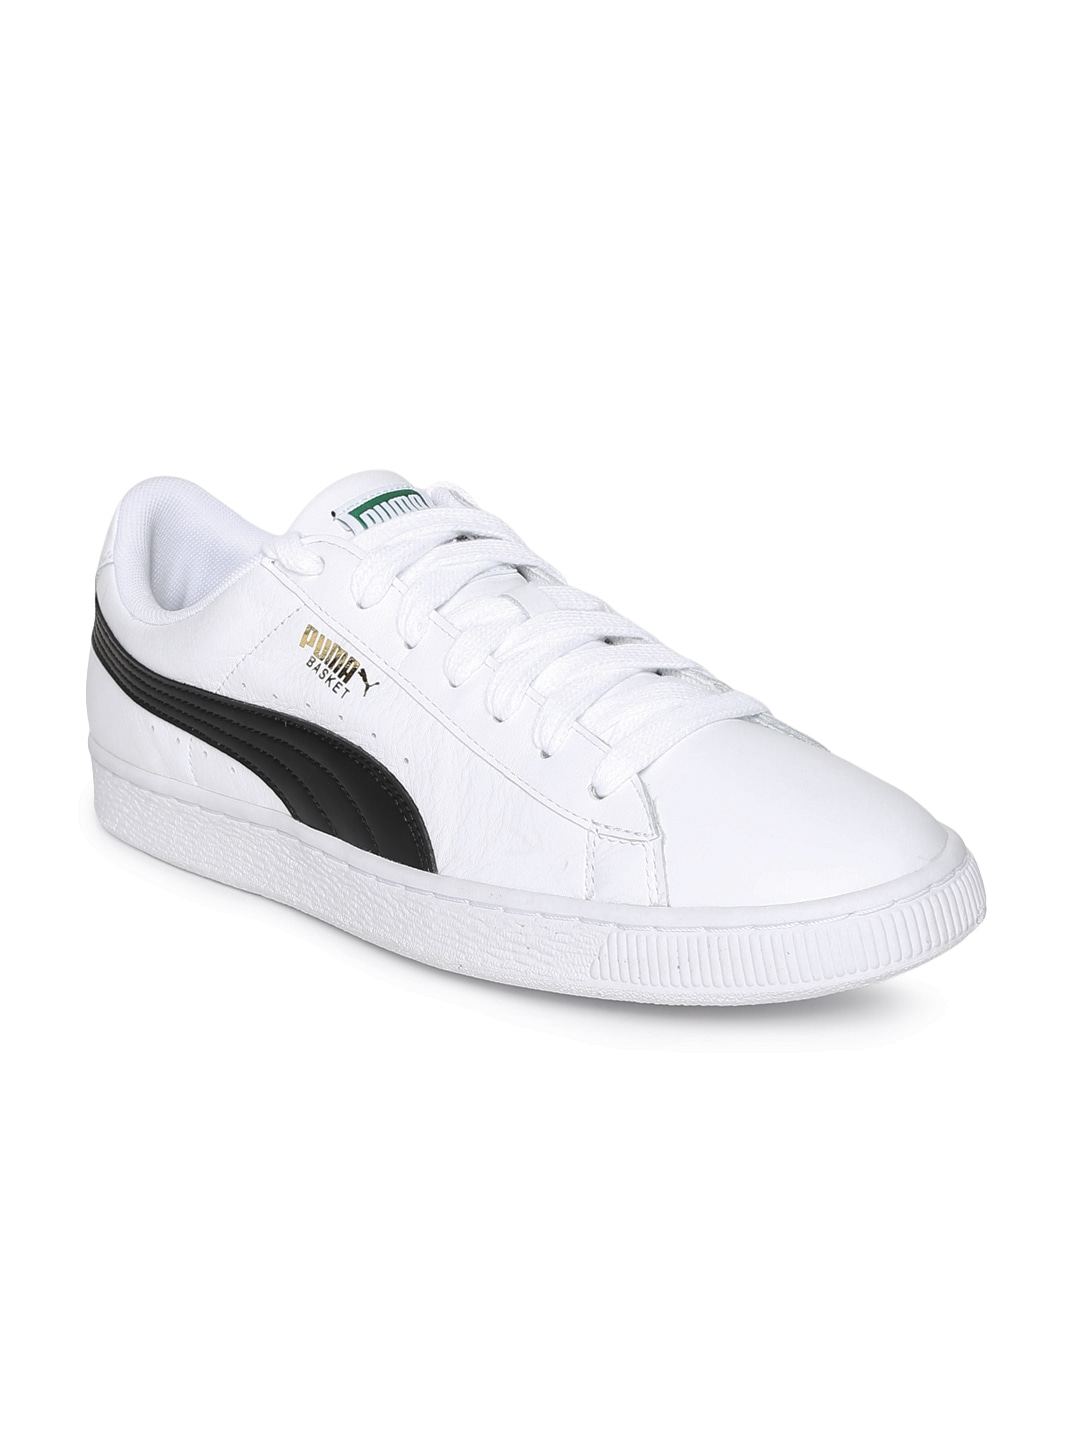 2a1b743fee4bd4 Puma Leather Shoes - Buy Puma Leather Shoes Online in India